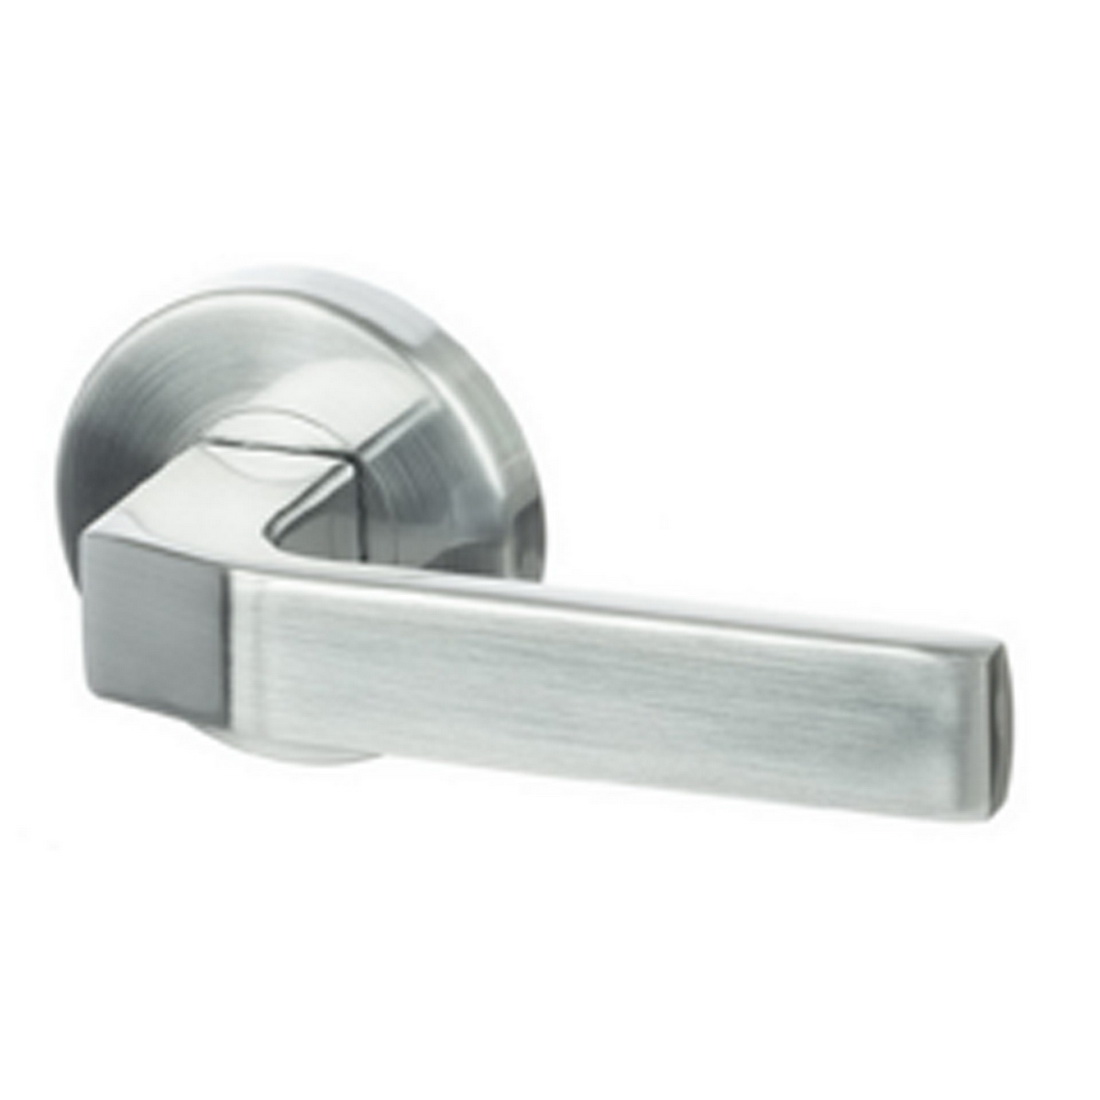 S Range Sienna Lever Handle Dummy Set Satin Chrome